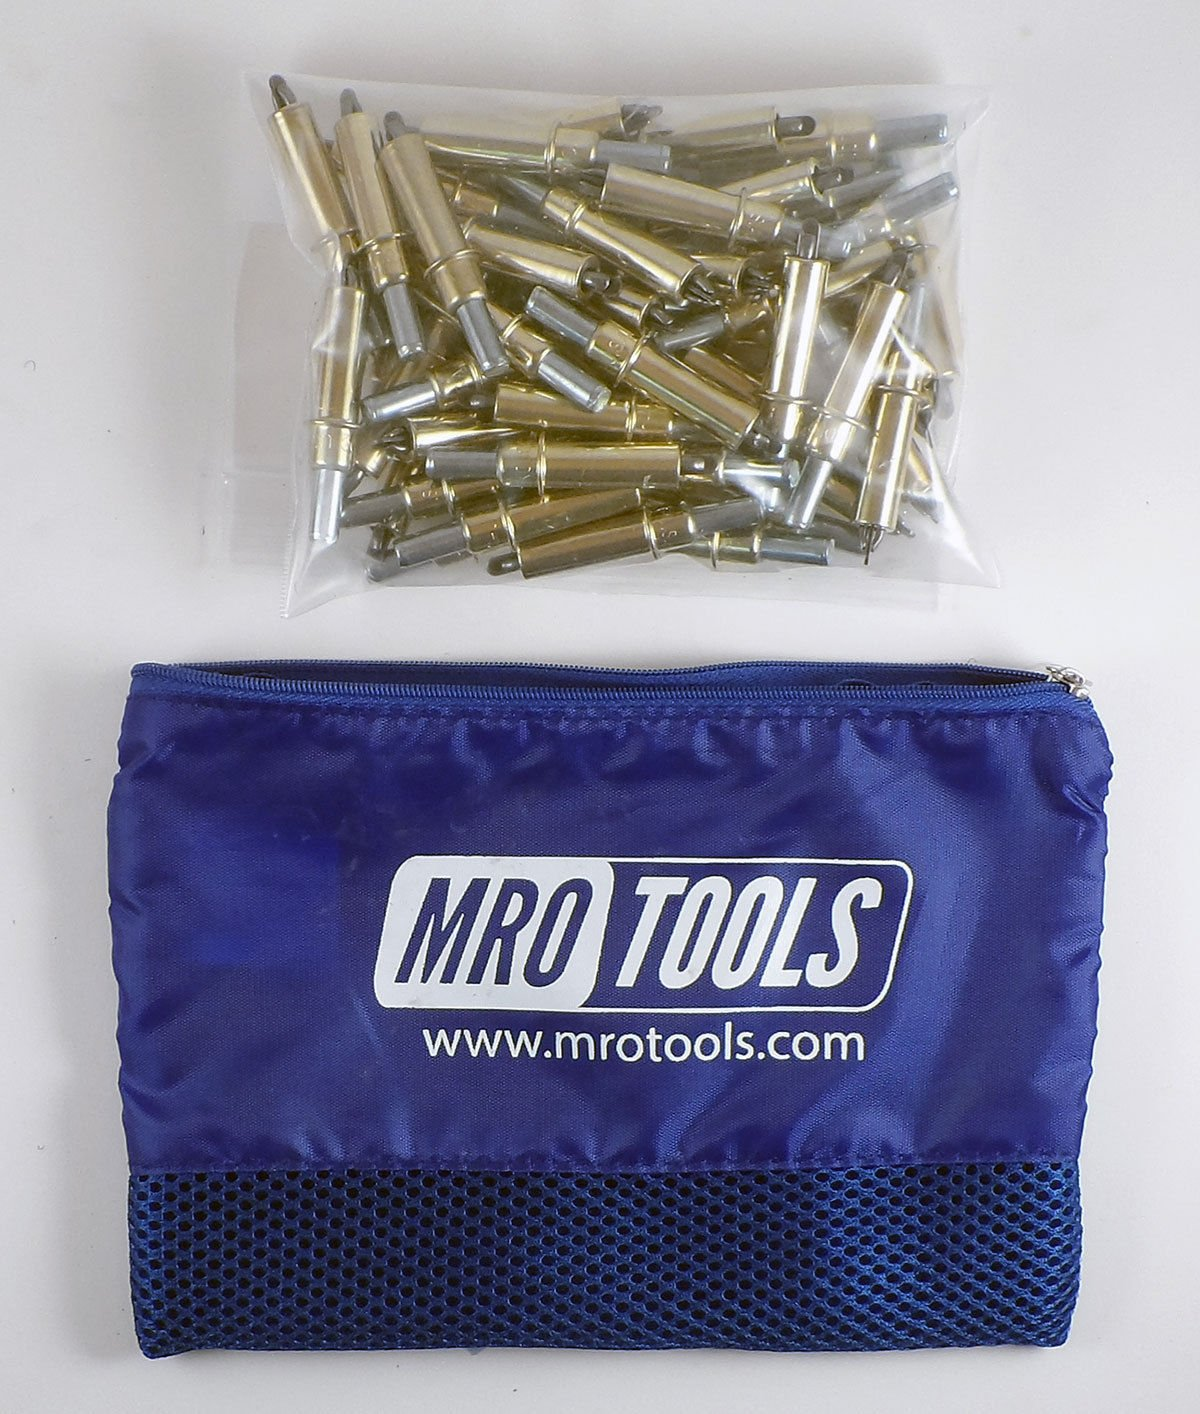 50 3/16 Cleco Sheet Metal Fasteners w/ Mesh Carry Bag (K2S50-3/16) by MRO Tools Cleco Fasteners